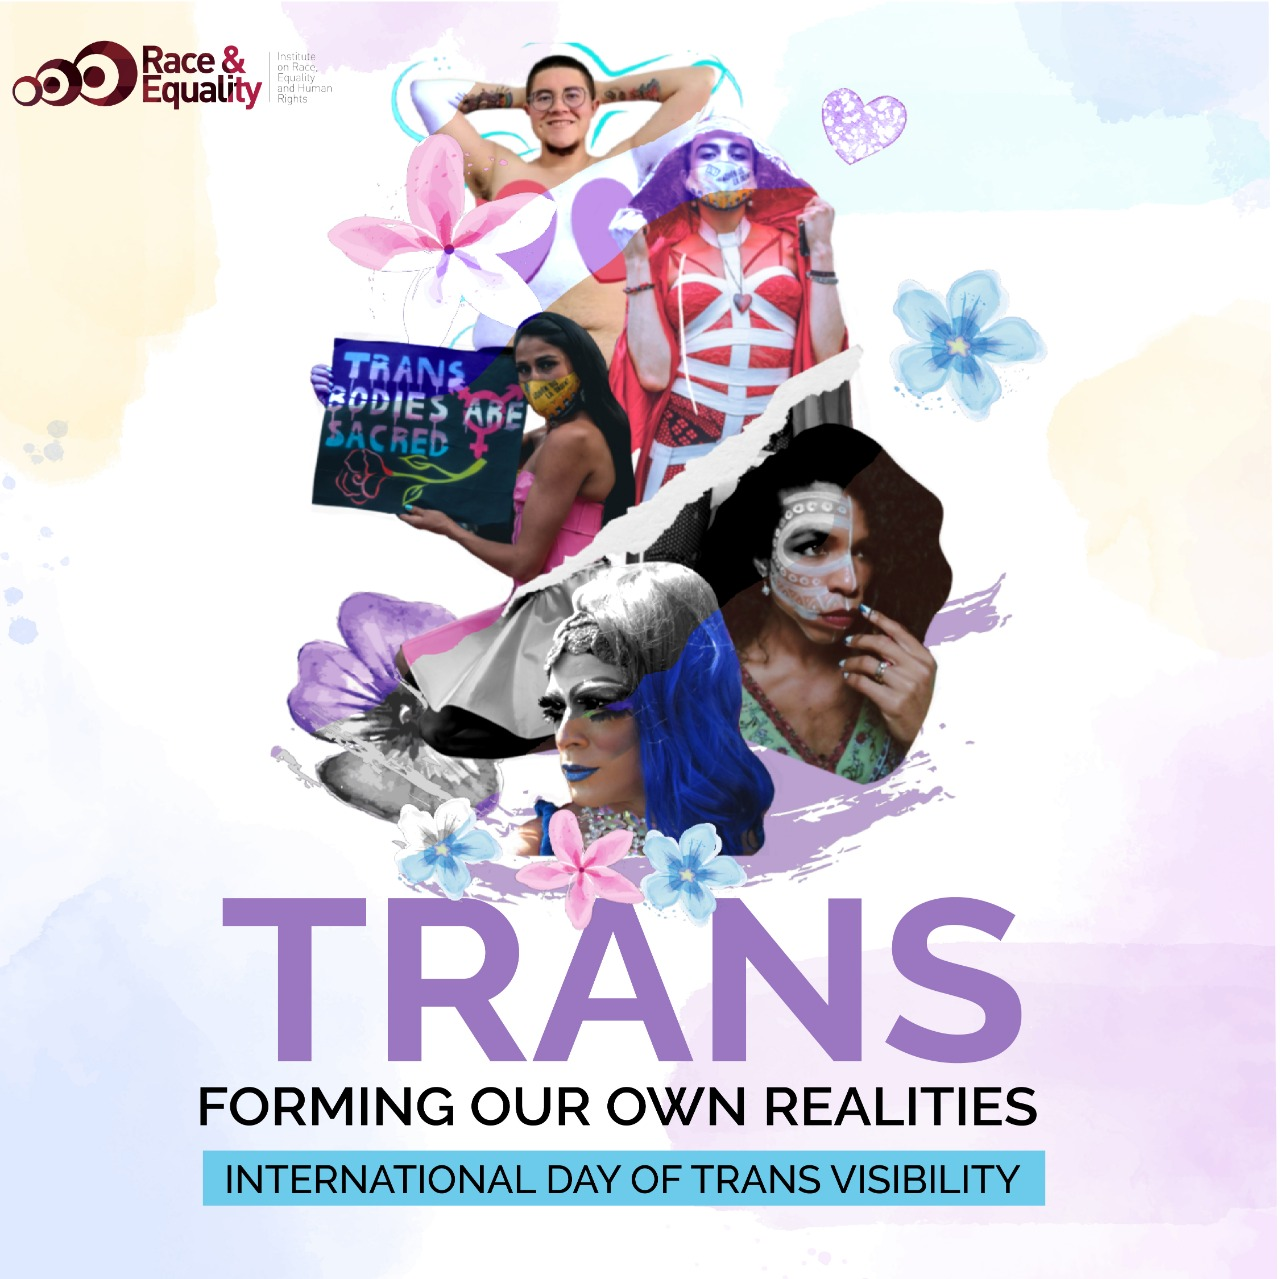 International Visibility Trans 2021